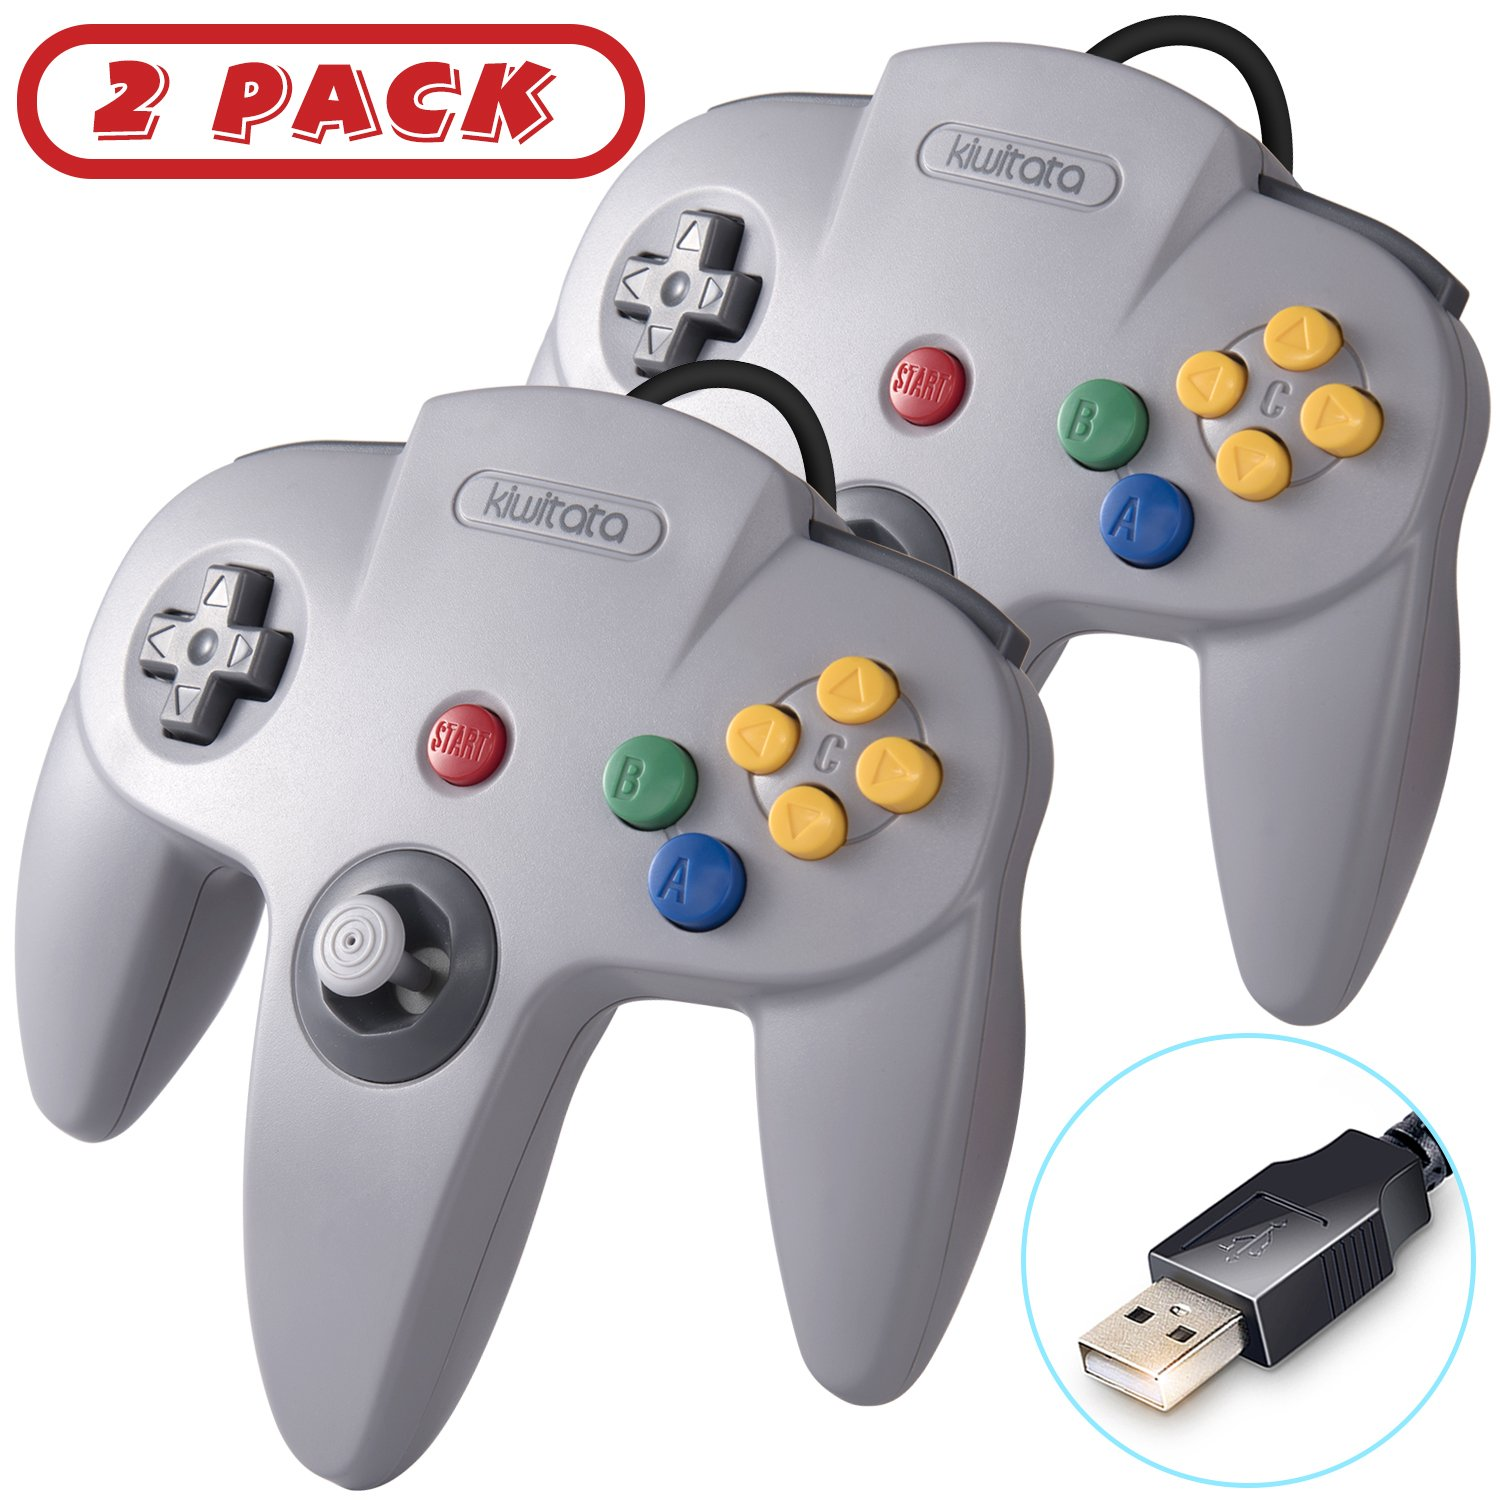 2 Pack Classic USB N64 Controller, Retro N64 Bit PC Wired Game Pad  Controllers Joystick for Windows PC and Mac Linux Retro Pie Gray